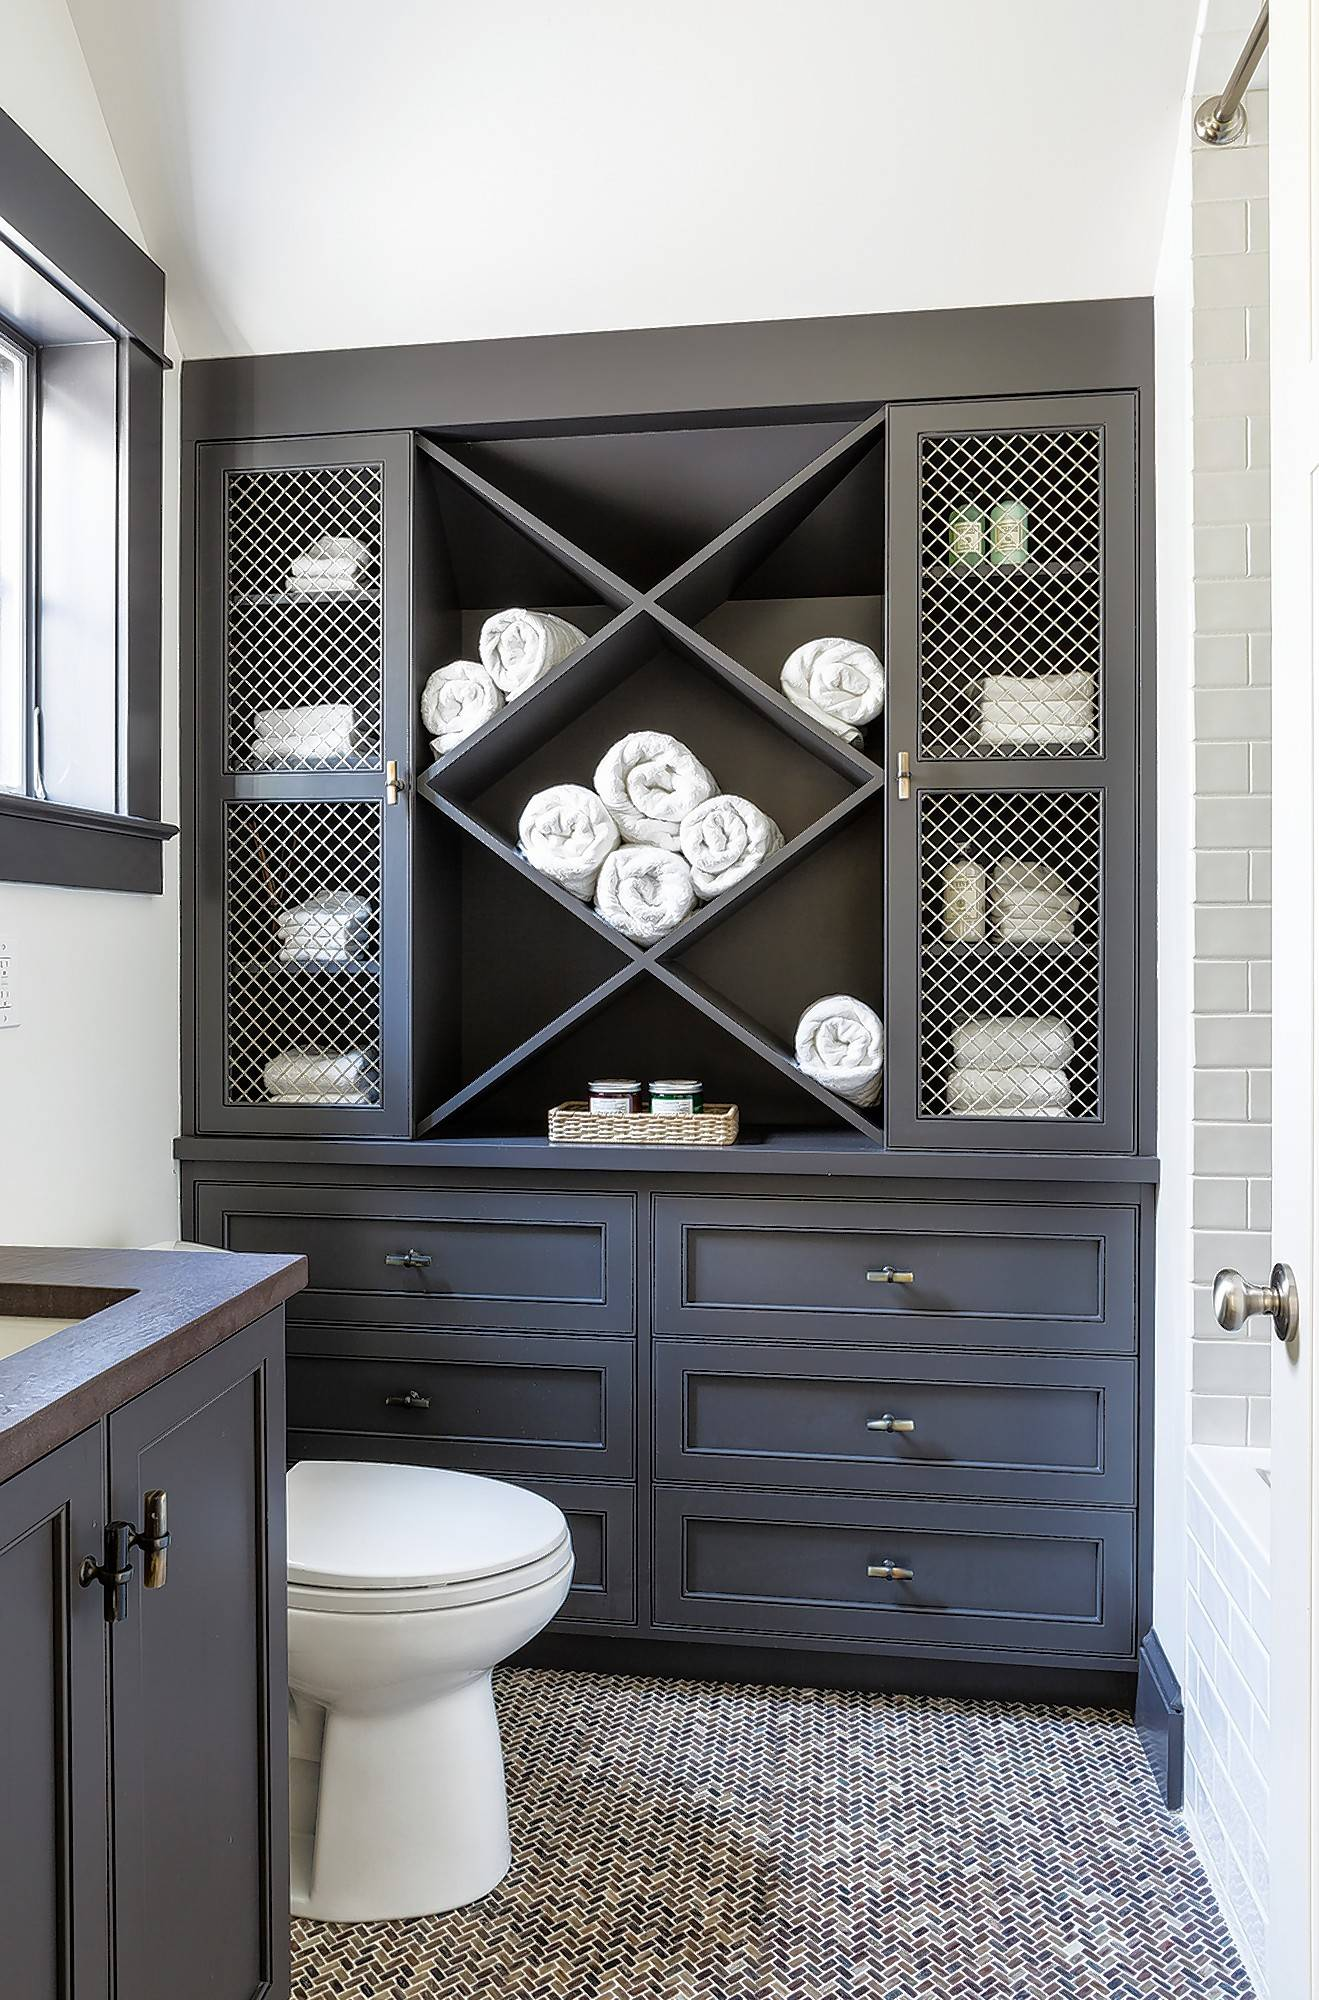 Take Advantage Of The Vertical Space In A Small Bathroom, Designer  Shazalynn Cavin Winfrey